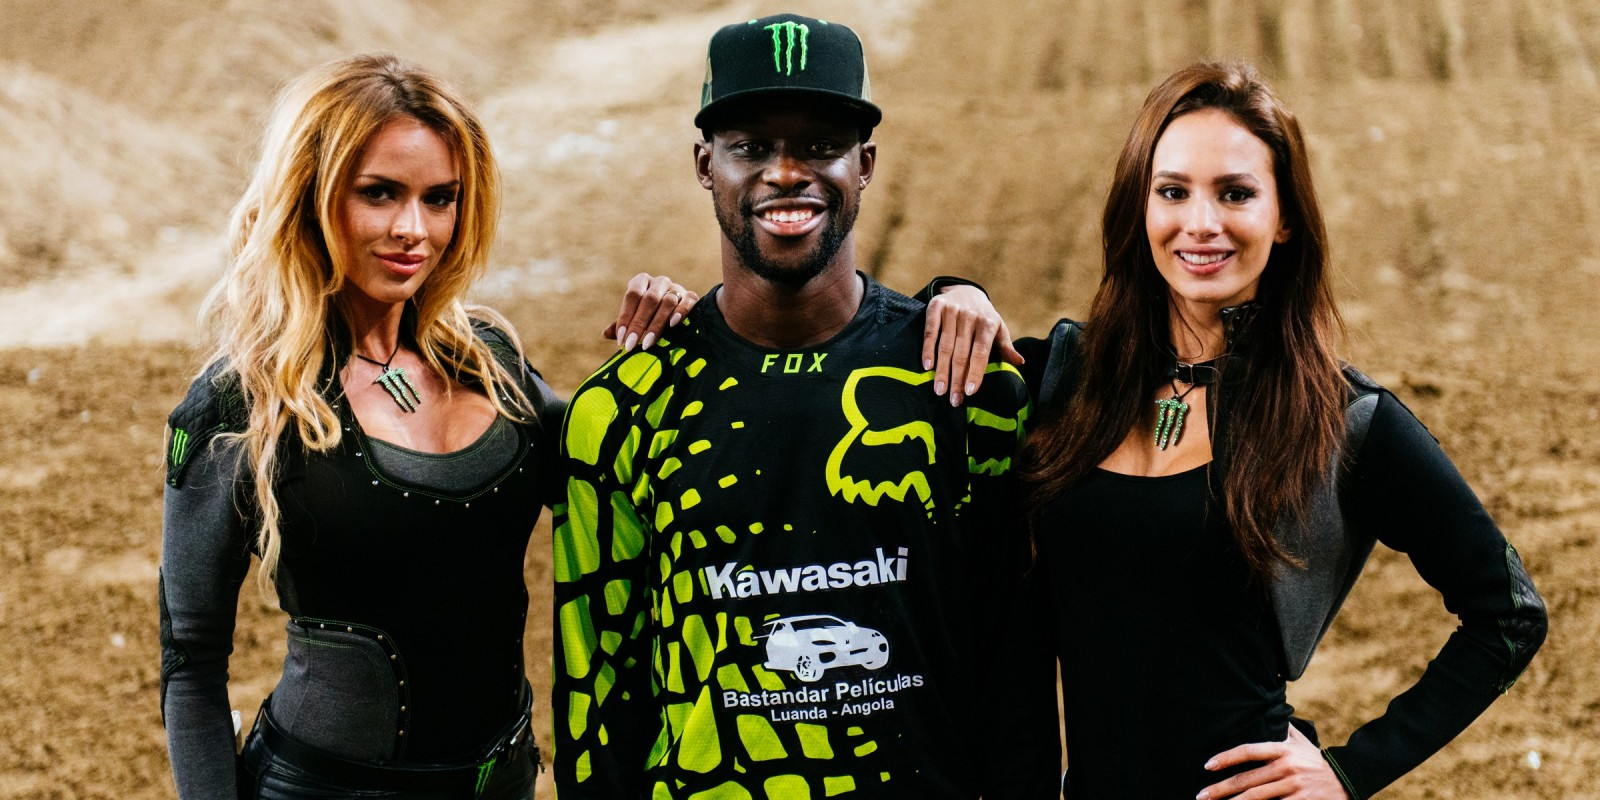 Supercross King of Poland 2016 - Huga Basaula with Monster Girl(s) after the event